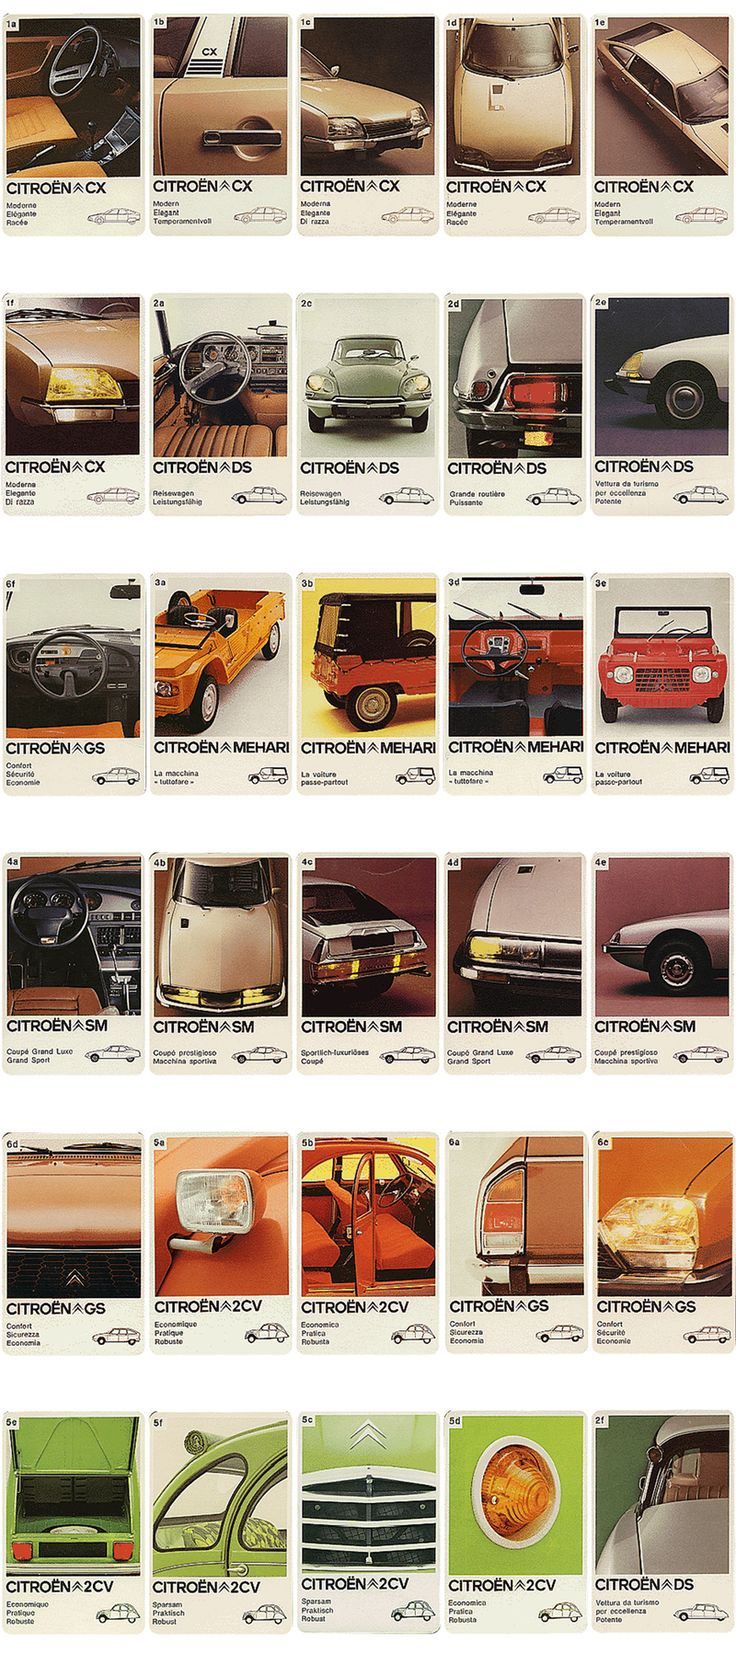 Classic Citroën Playing Card Game - AnotherDesignBlog.